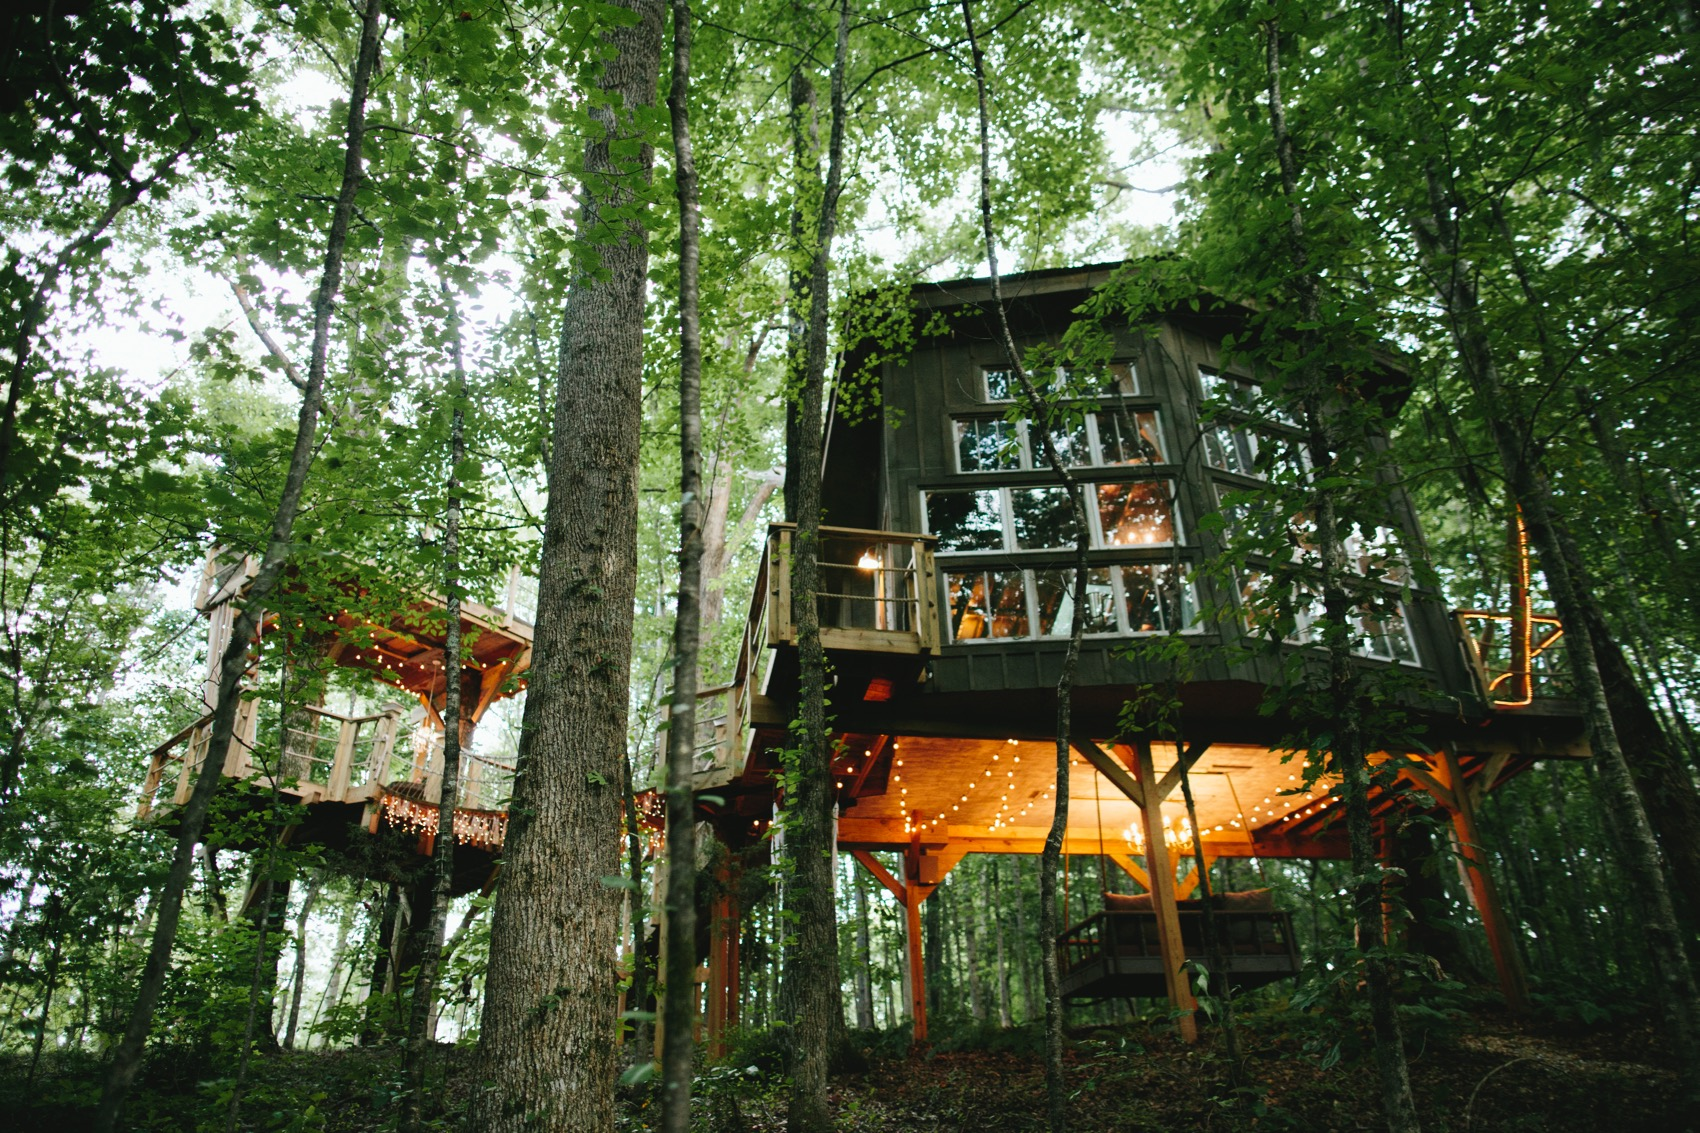 THE MAJESTIC TREEHOUSE - REGAL, ROMANTIC, ONE-OF-A-KIND